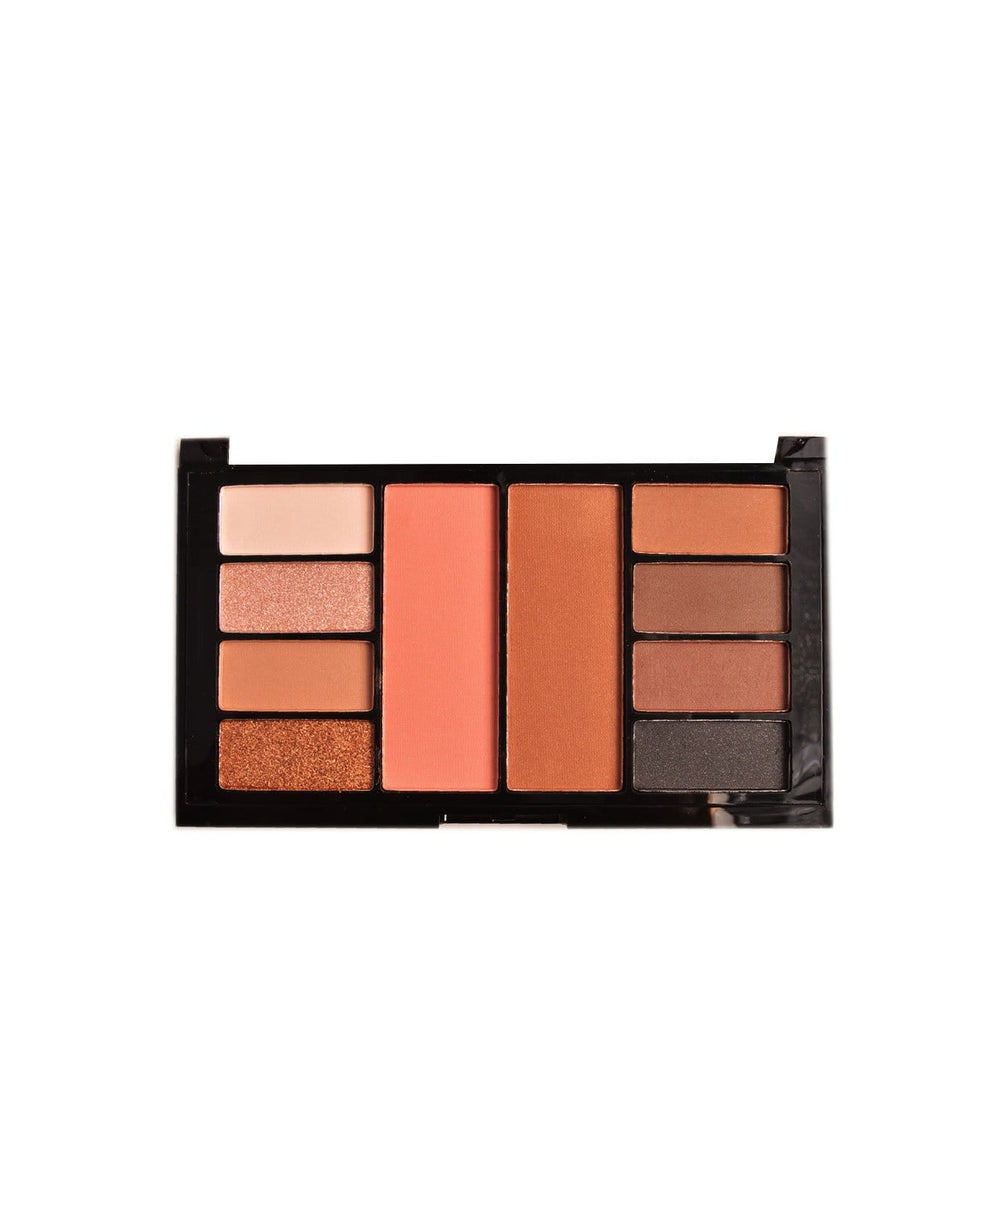 Amuse Sultry Obsessions Palette